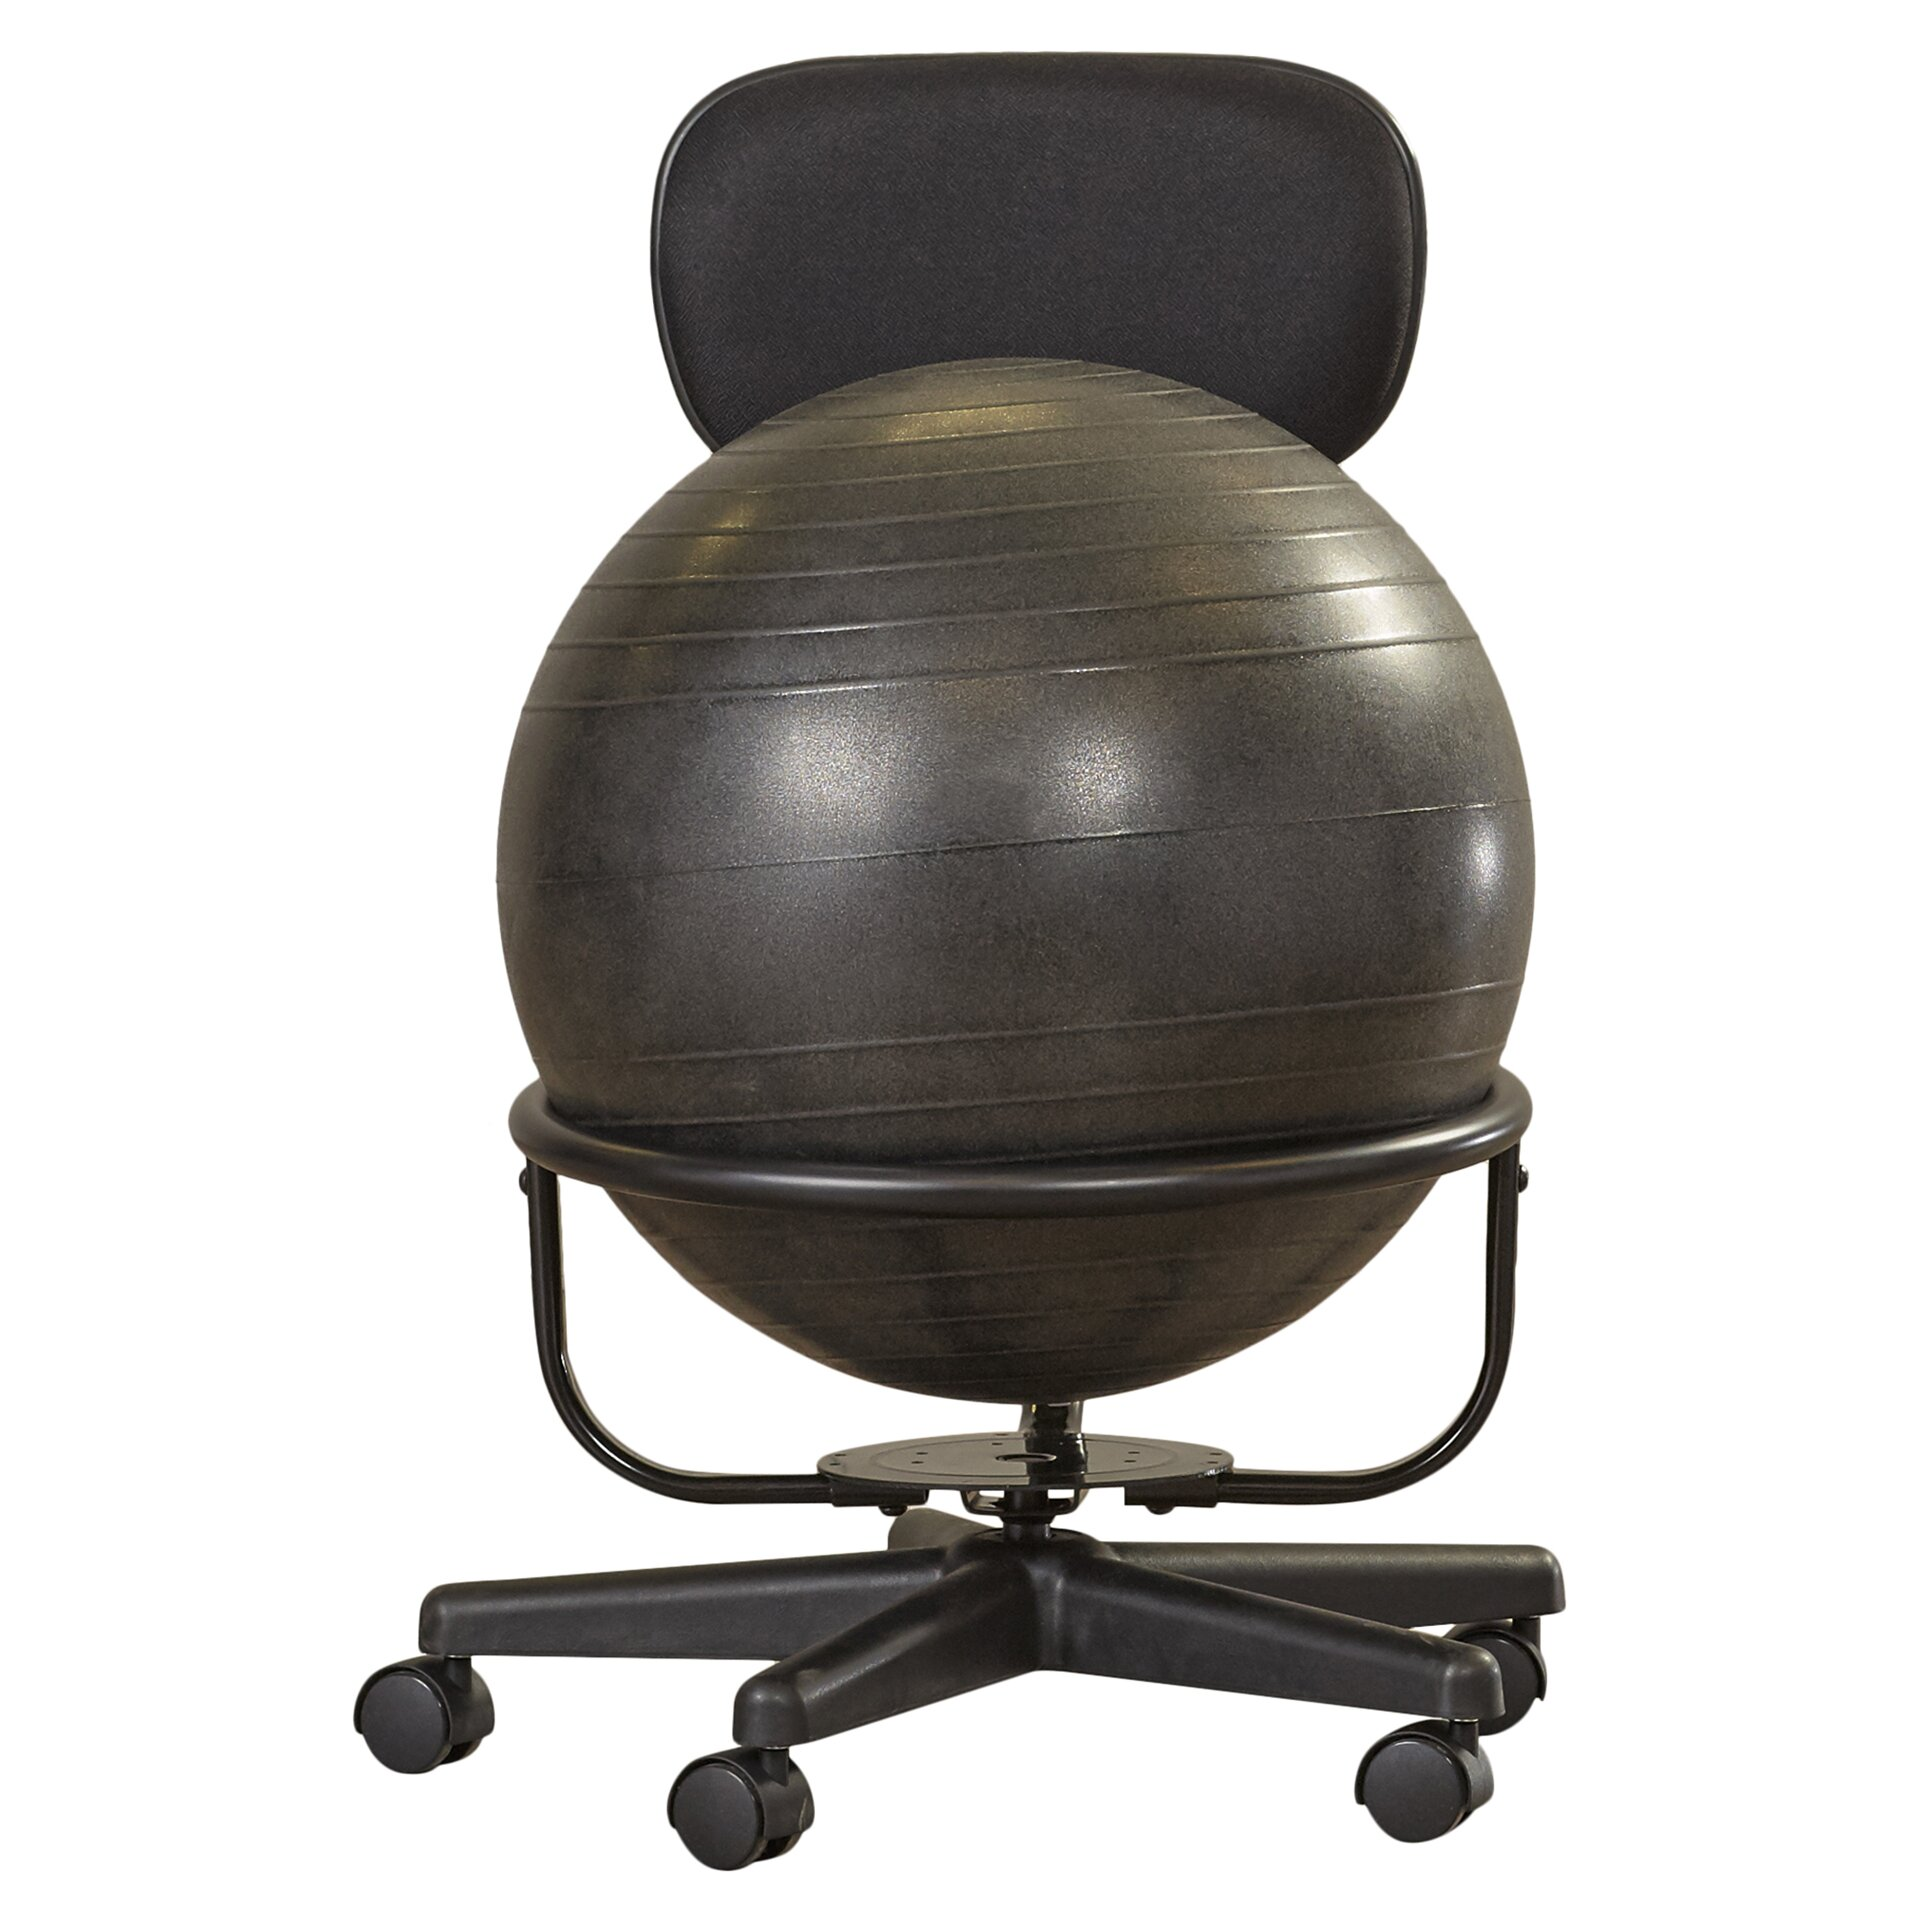 symple stuff exercise ball chair reviews. Black Bedroom Furniture Sets. Home Design Ideas